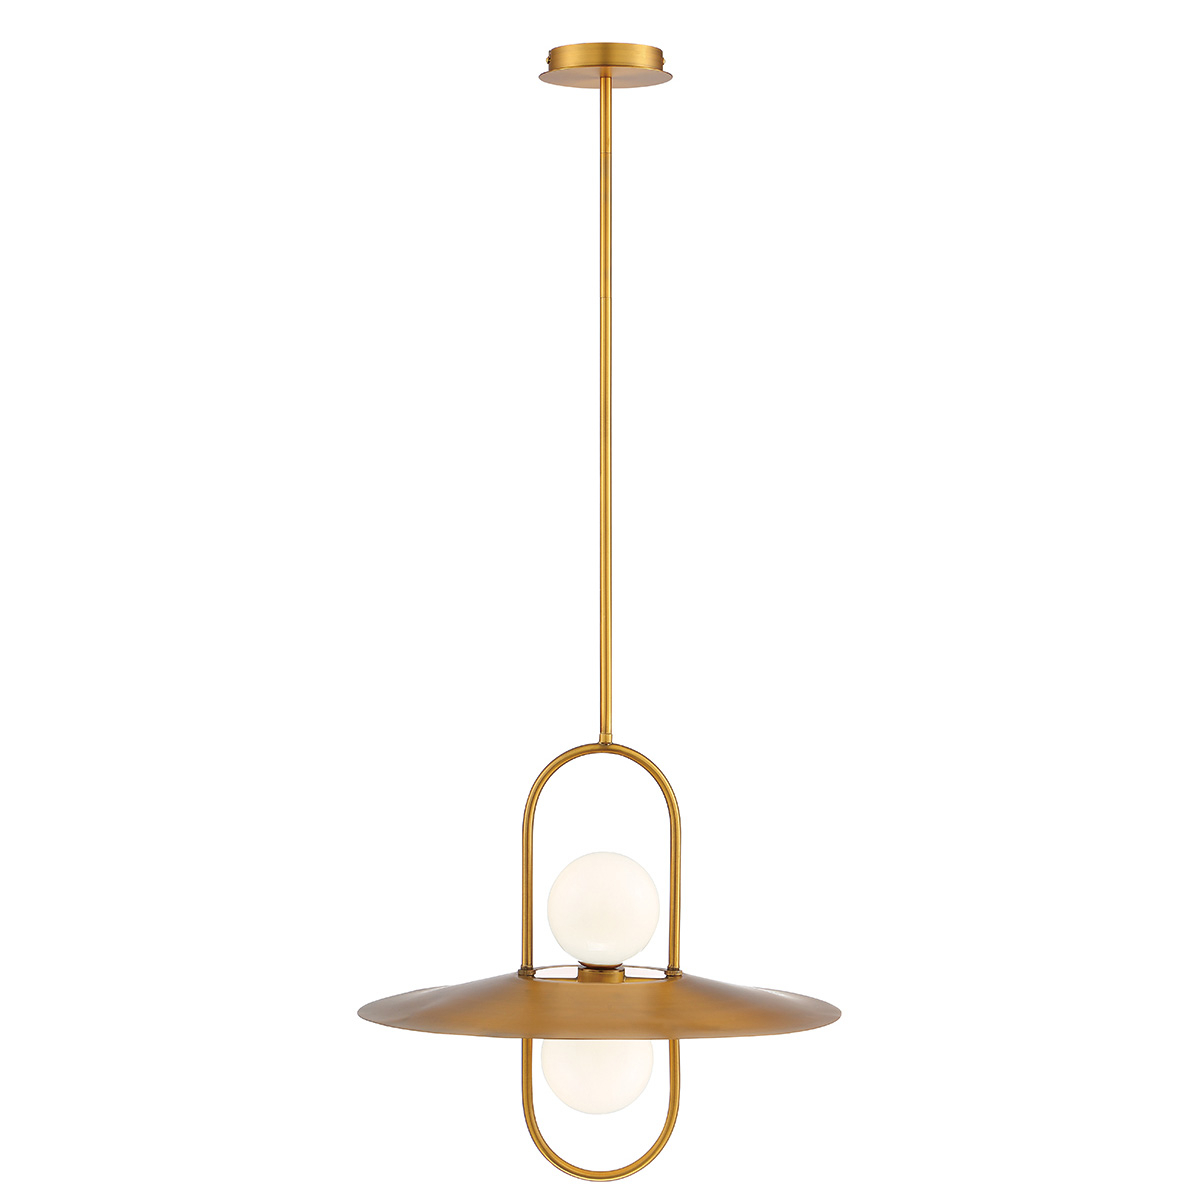 35898-030 intended for Millbrook 5-Light Shaded Chandeliers